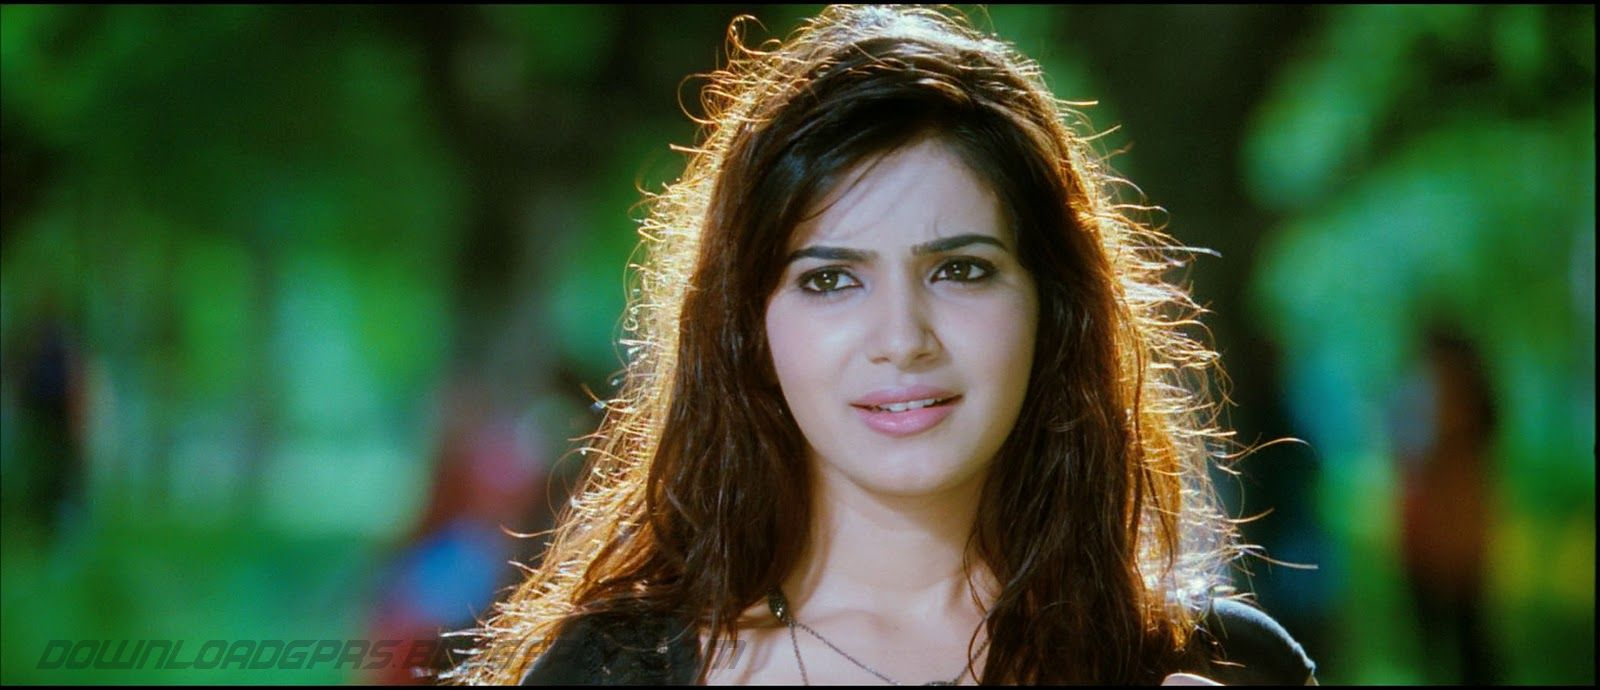 Samantha Hd Wallpapers: Samantha Ruth Prabhu Cute Wallpapers Gallery